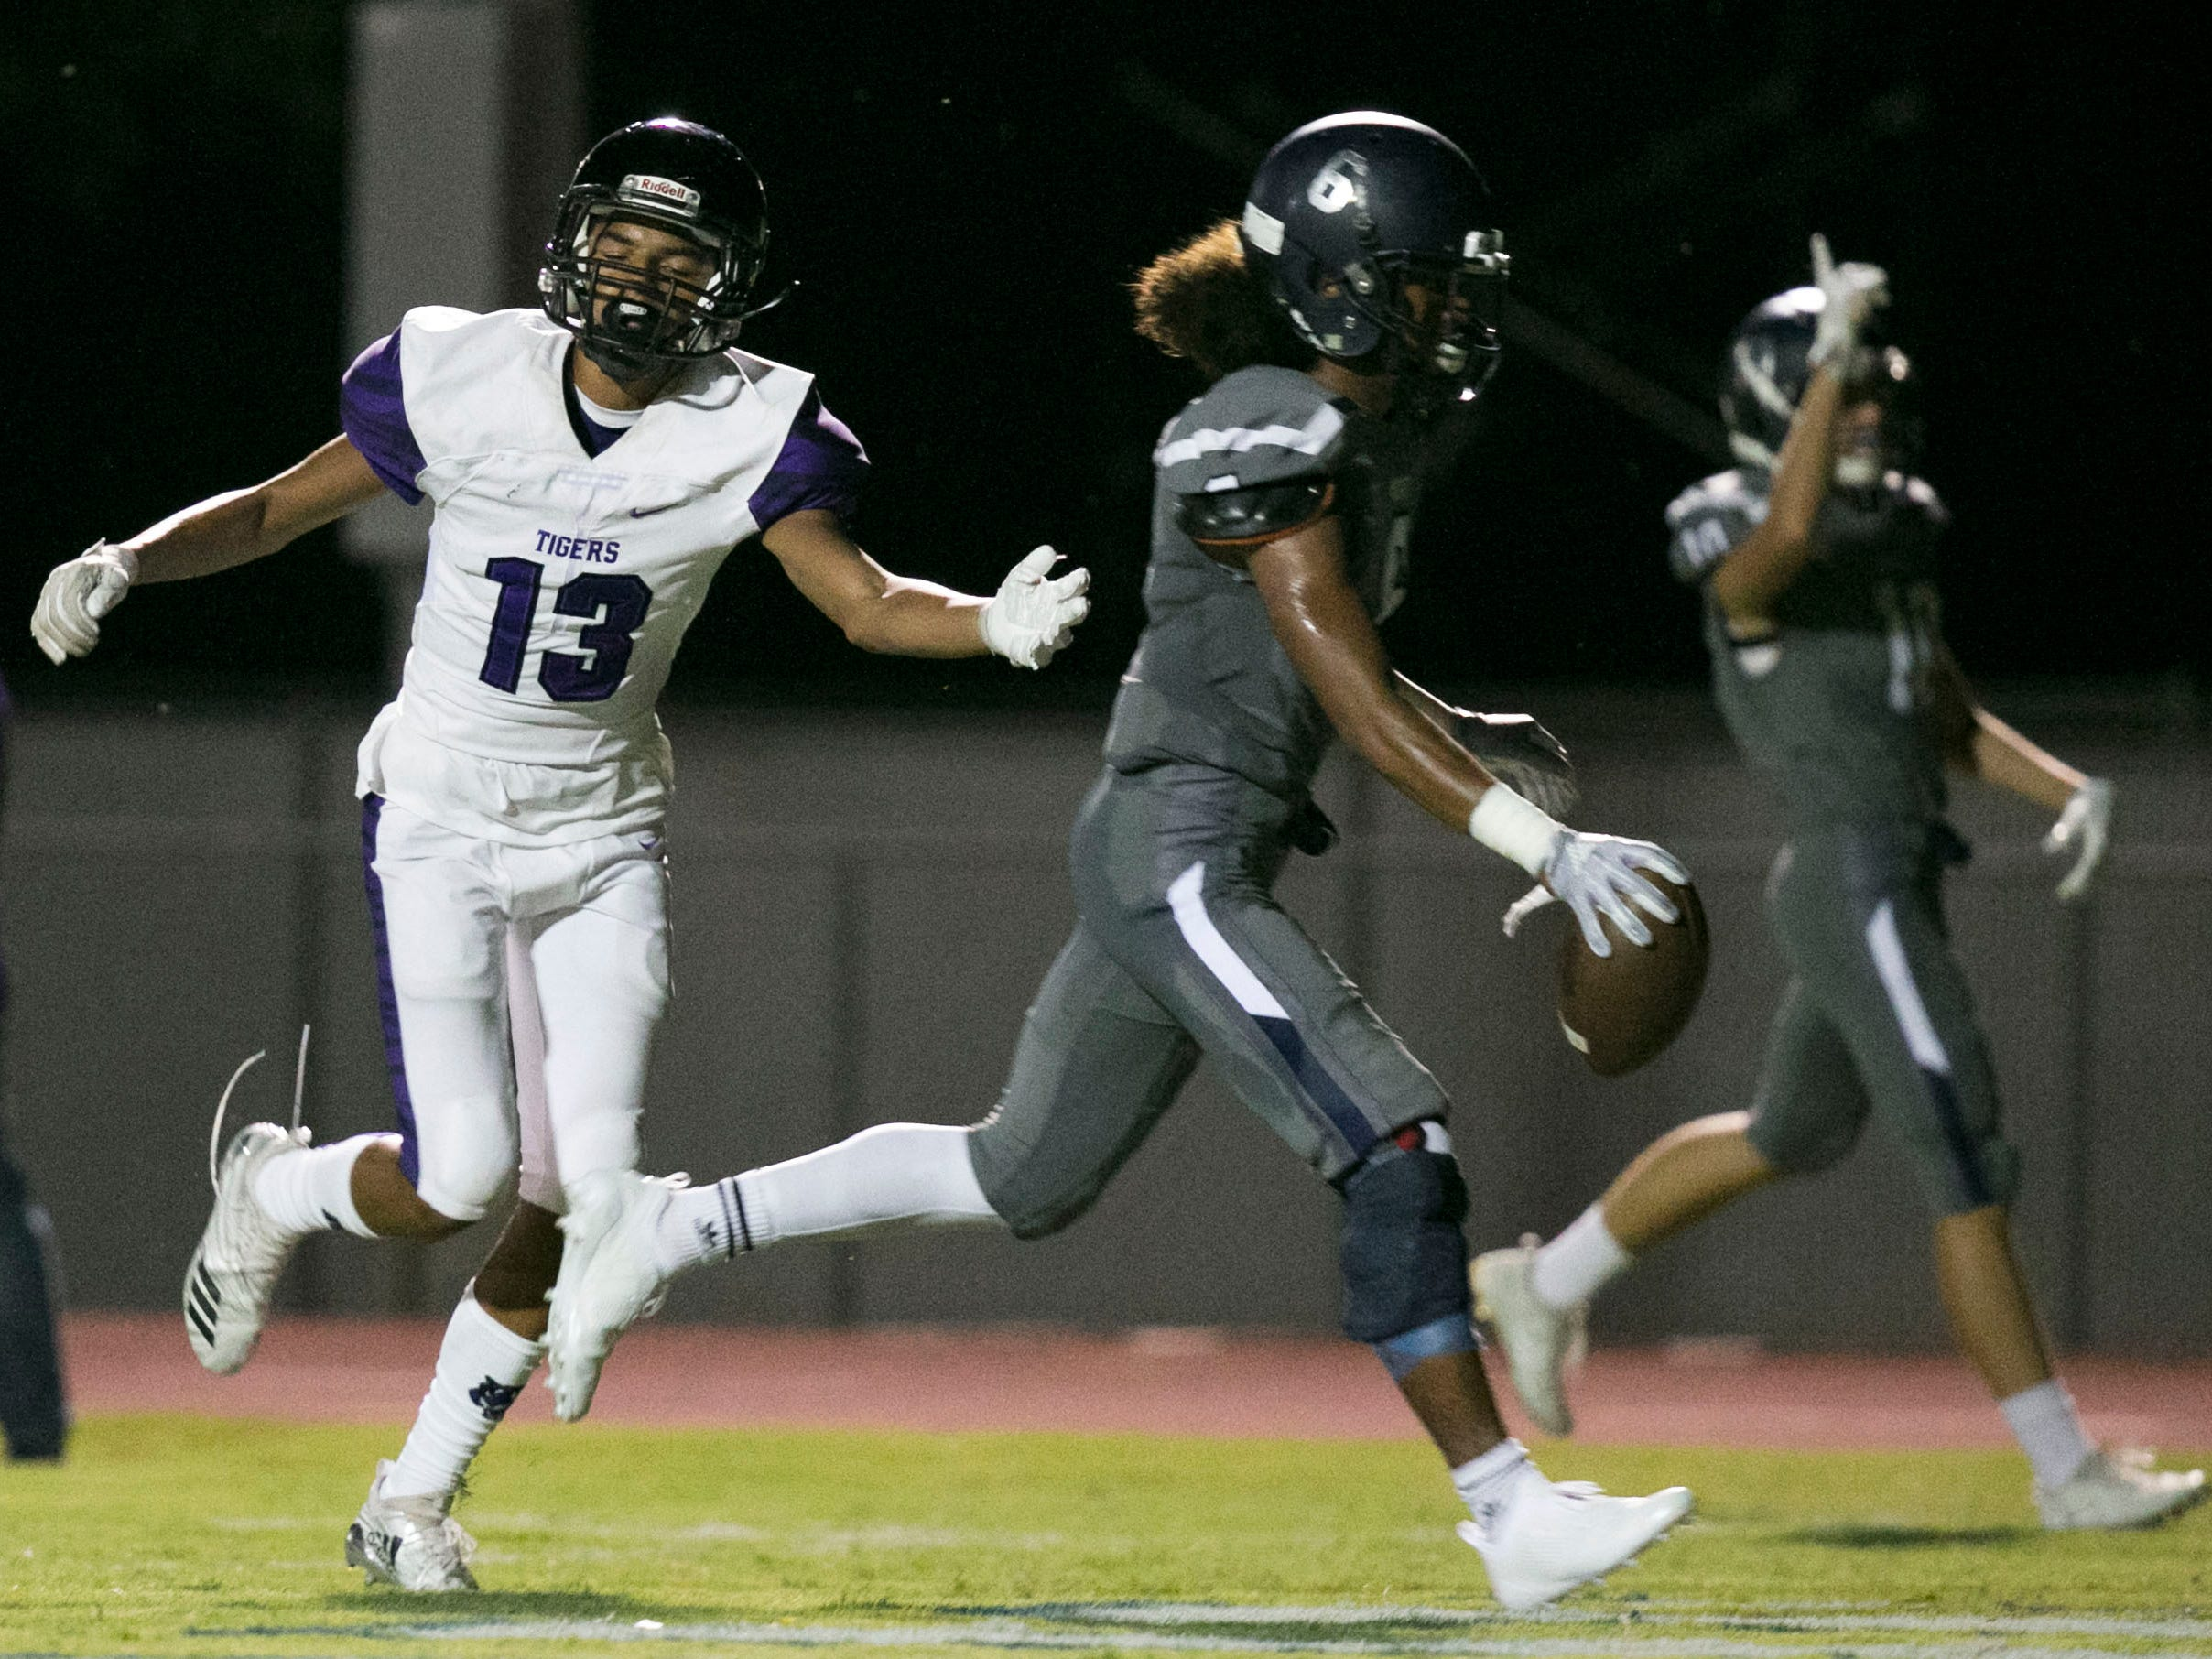 Higley High receiver James Mageo scores a touchdown past  Millennium High's Treydan Stukes during the second quarter of the high school football game at Higley High in Gilbert on Friday evening, September 14, 2018.